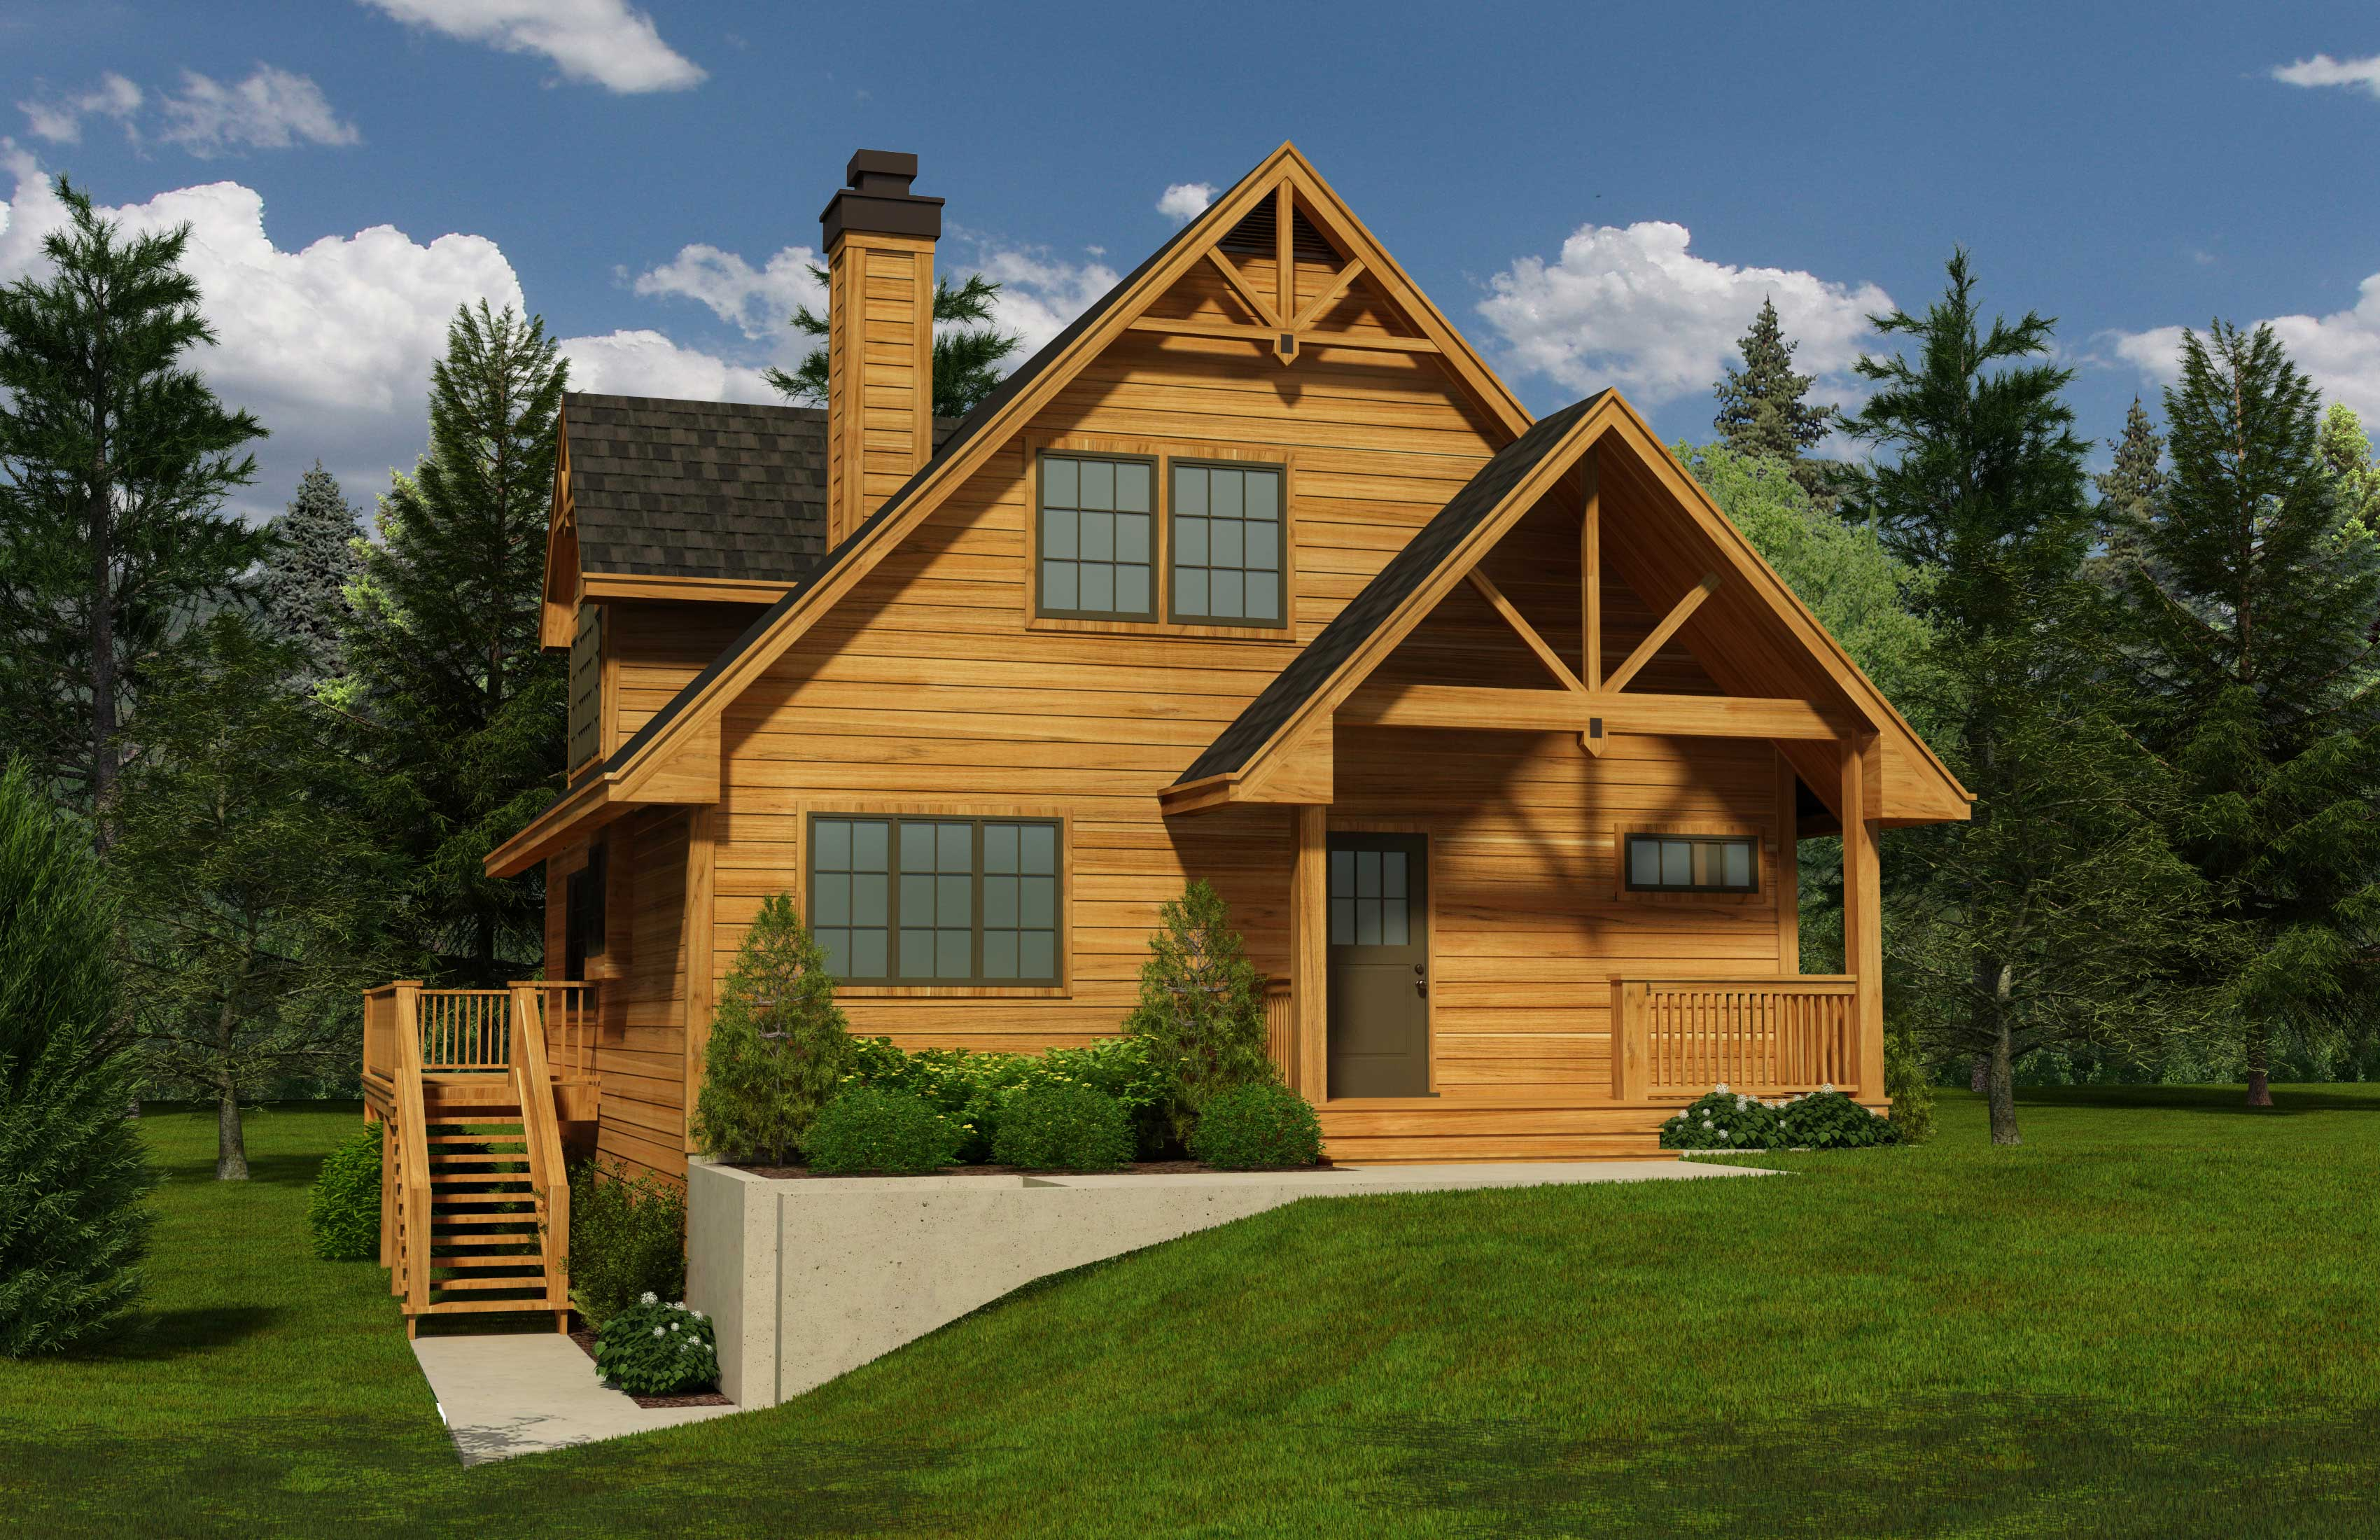 3 Bedrm 1741 Sq Ft Craftsman House Plan 1601018